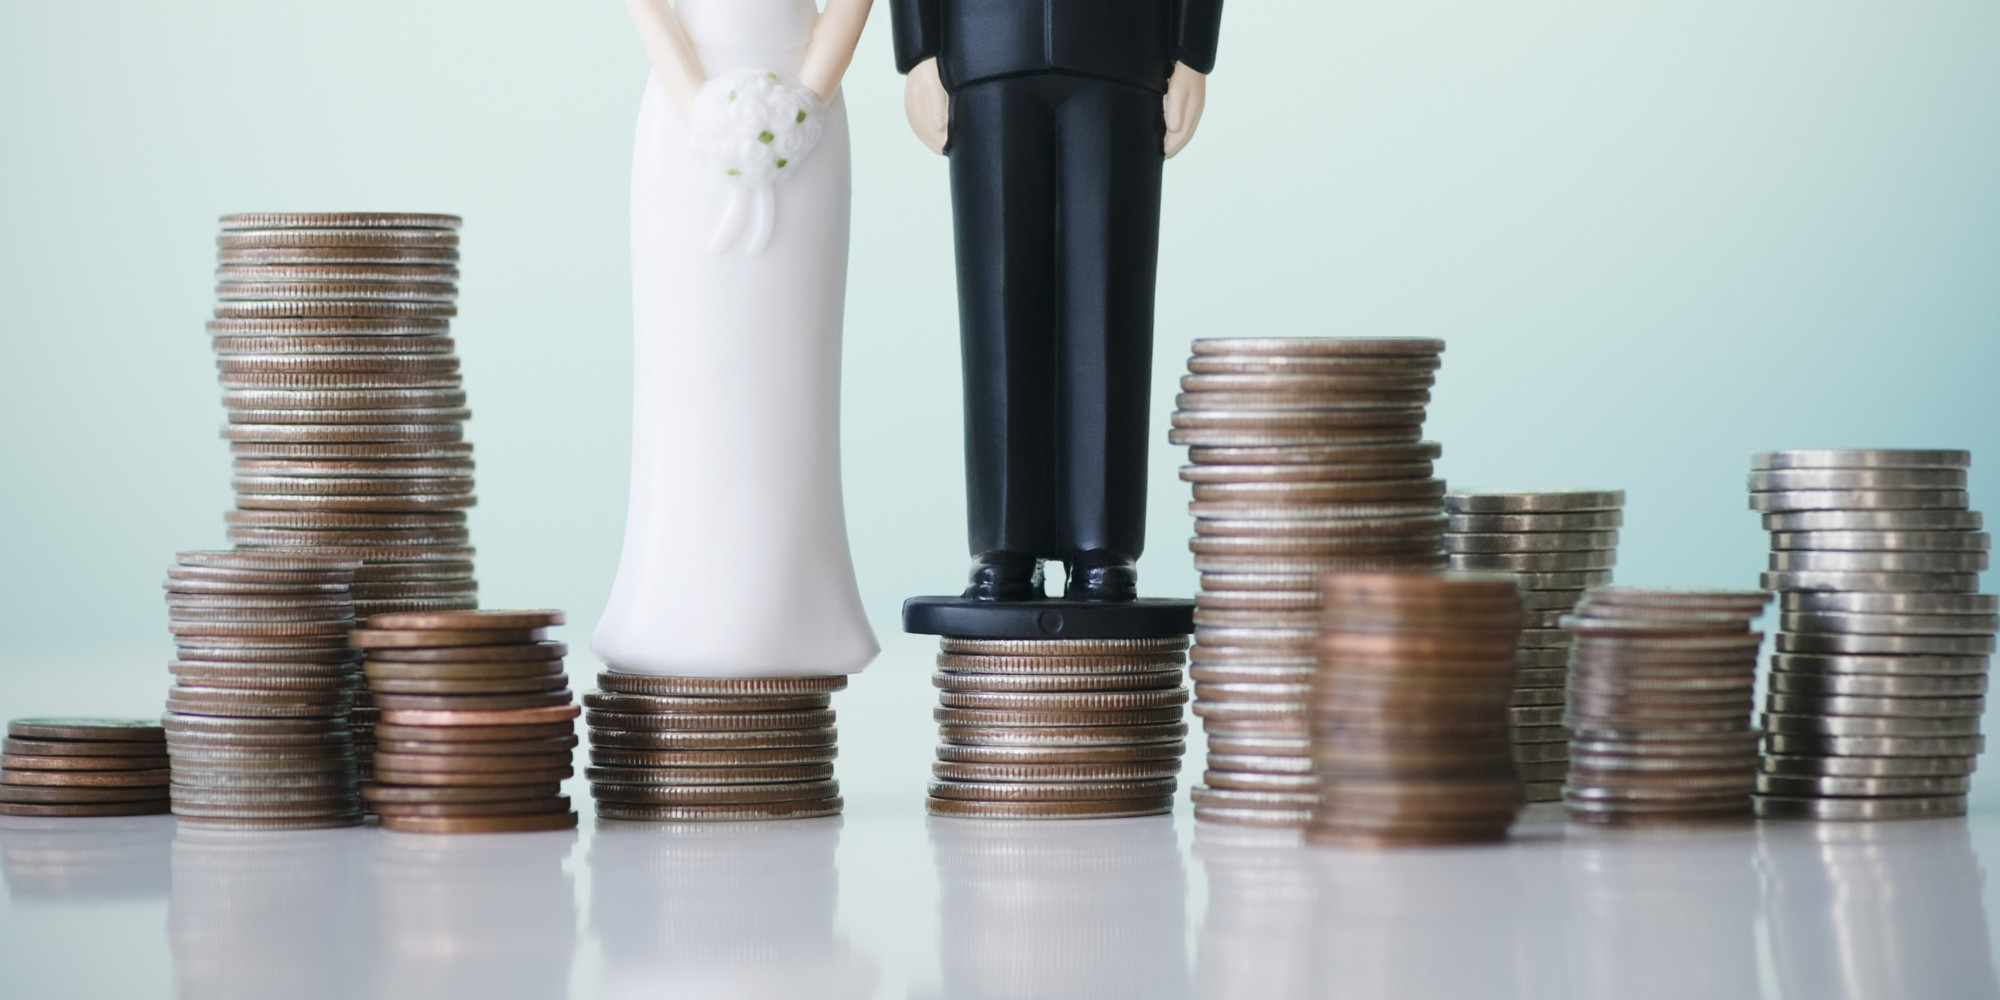 5 Detailed Tips For Managing Your Wedding Budget From Day